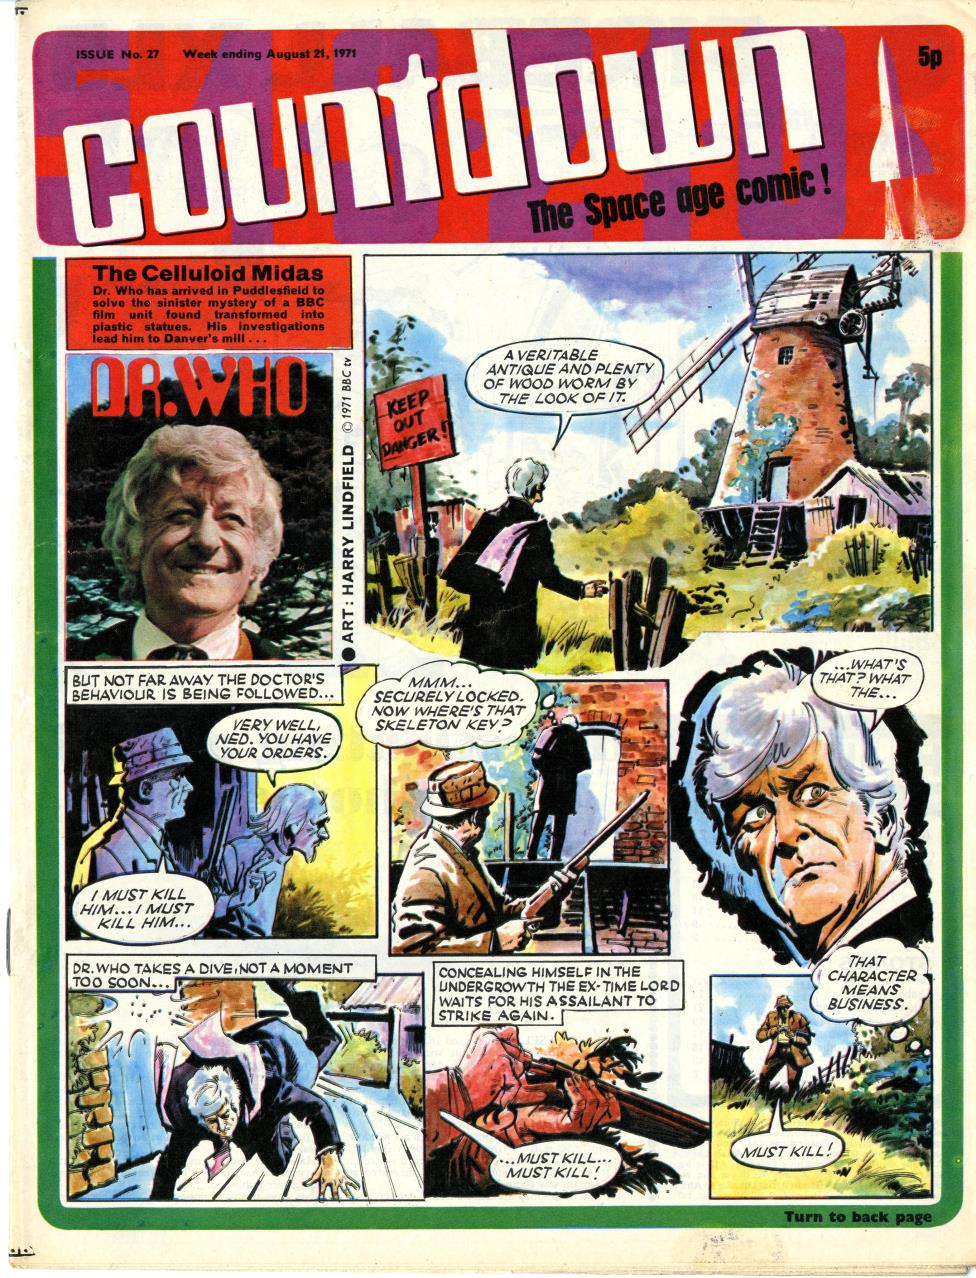 Polystyle Publications, Countdown issue 27, 21 August 1971